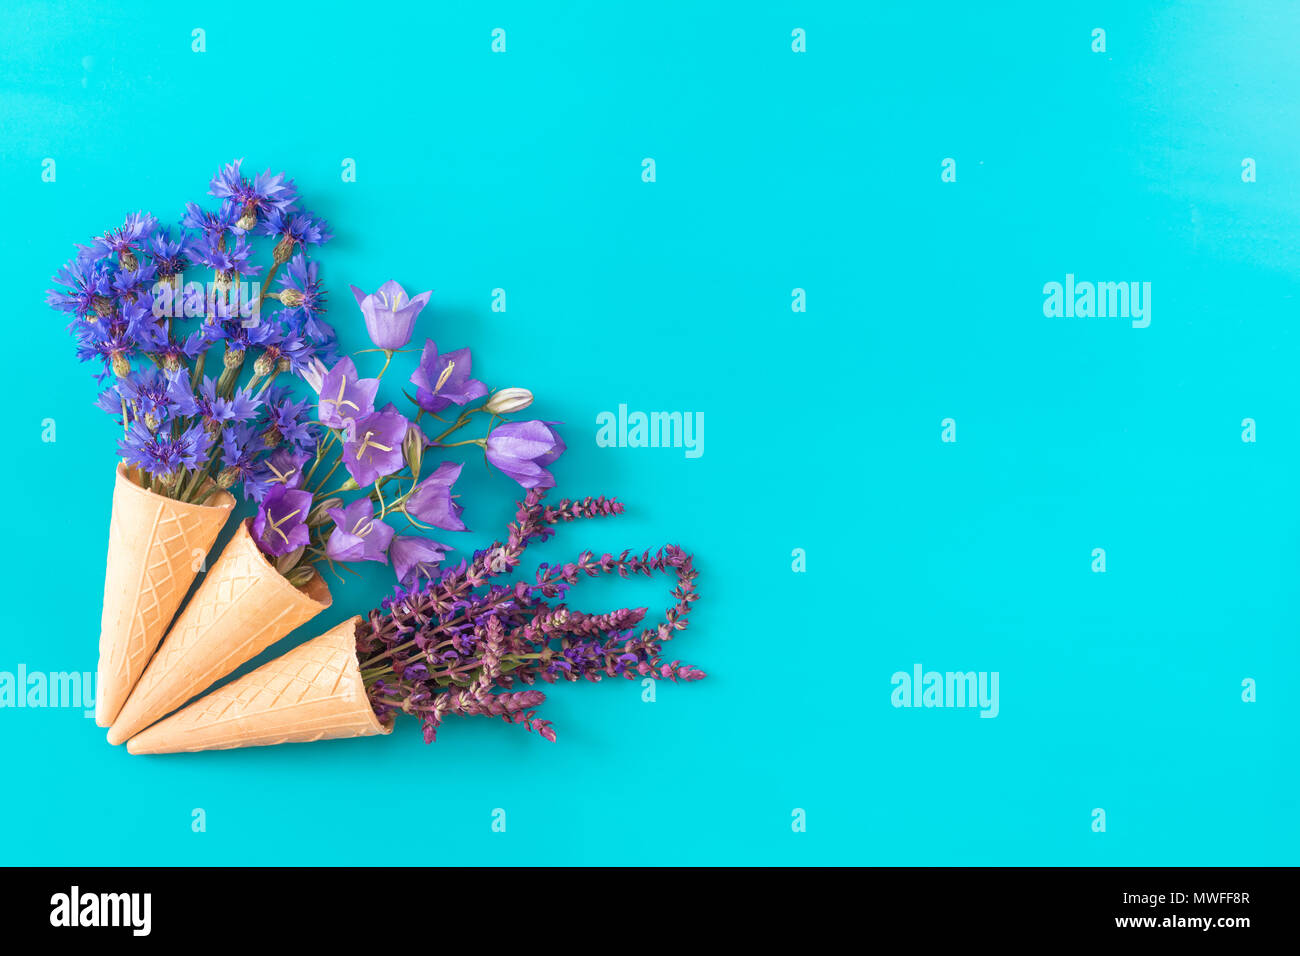 Three waffle cones with thyme, cornflower, blue bells and white flowers blossom bouquets on blue surface. Flat lay, top view floral background. - Stock Image